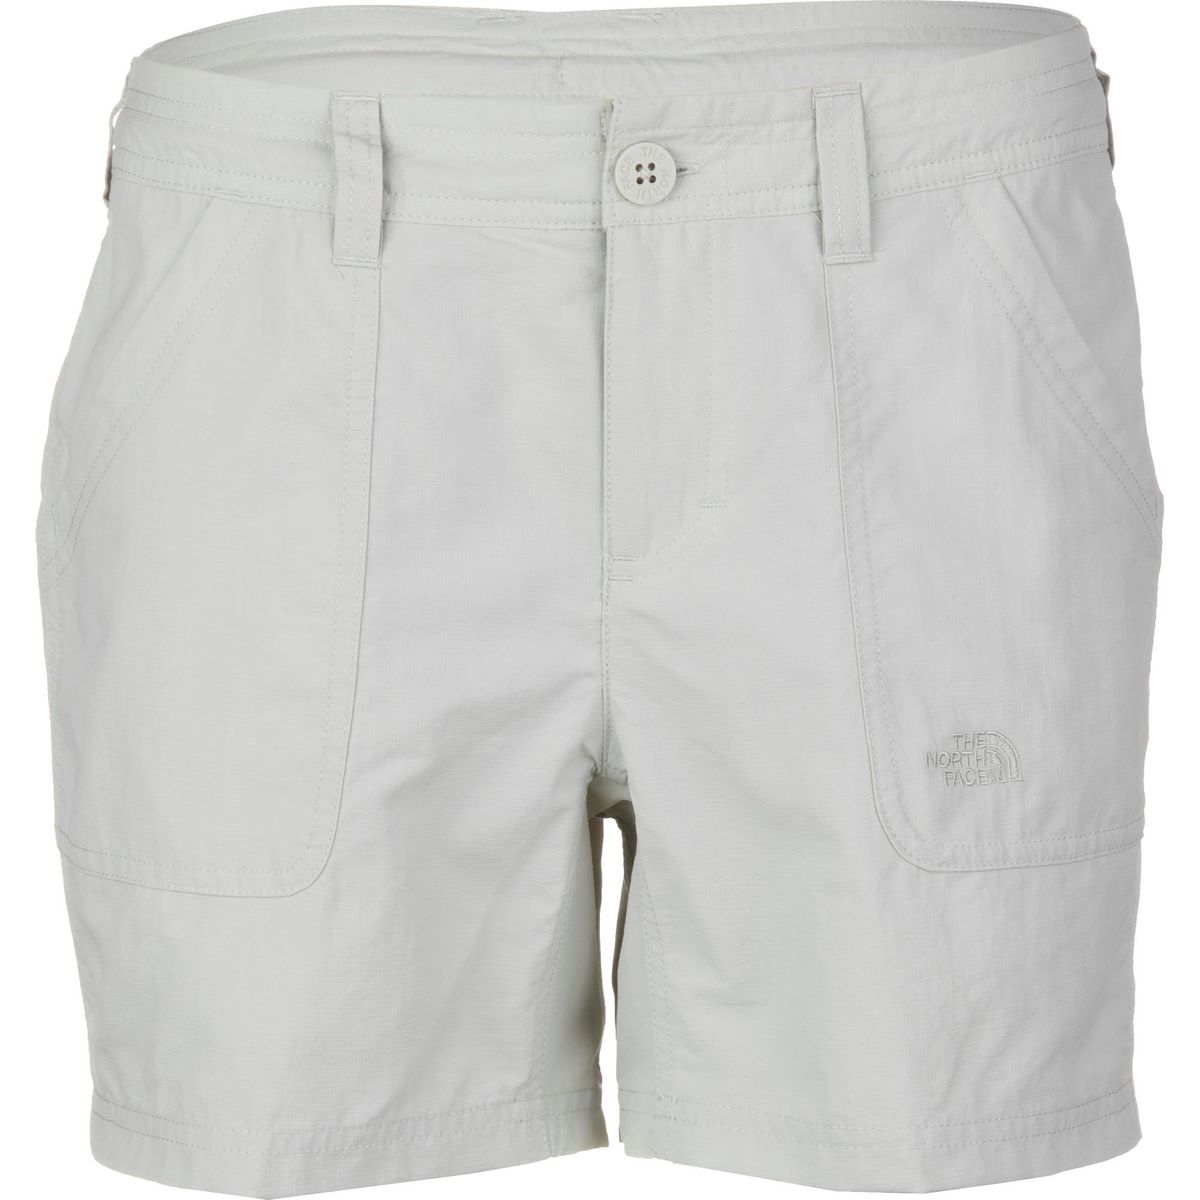 The North Face Horizon II Shorts